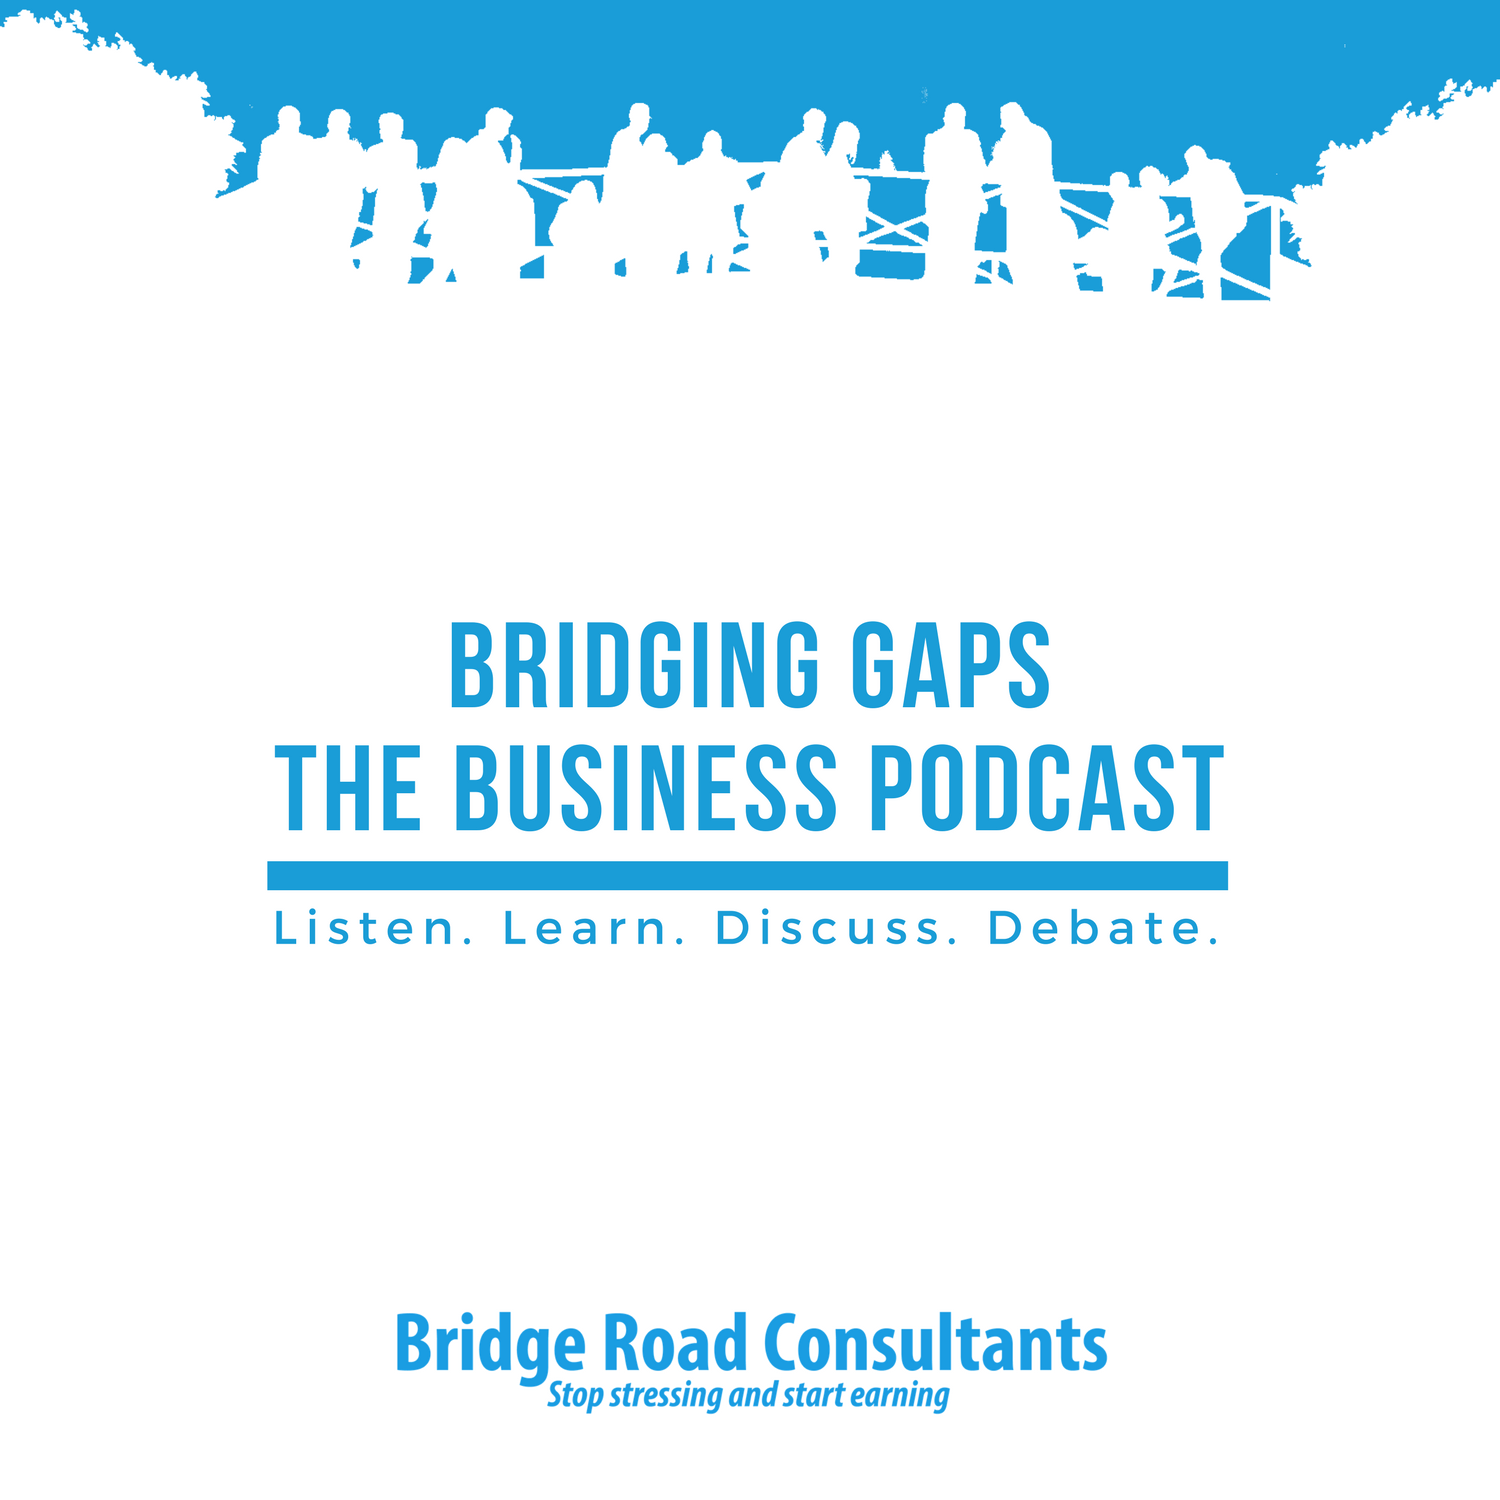 Bridging Gaps - The Business Podcast show art